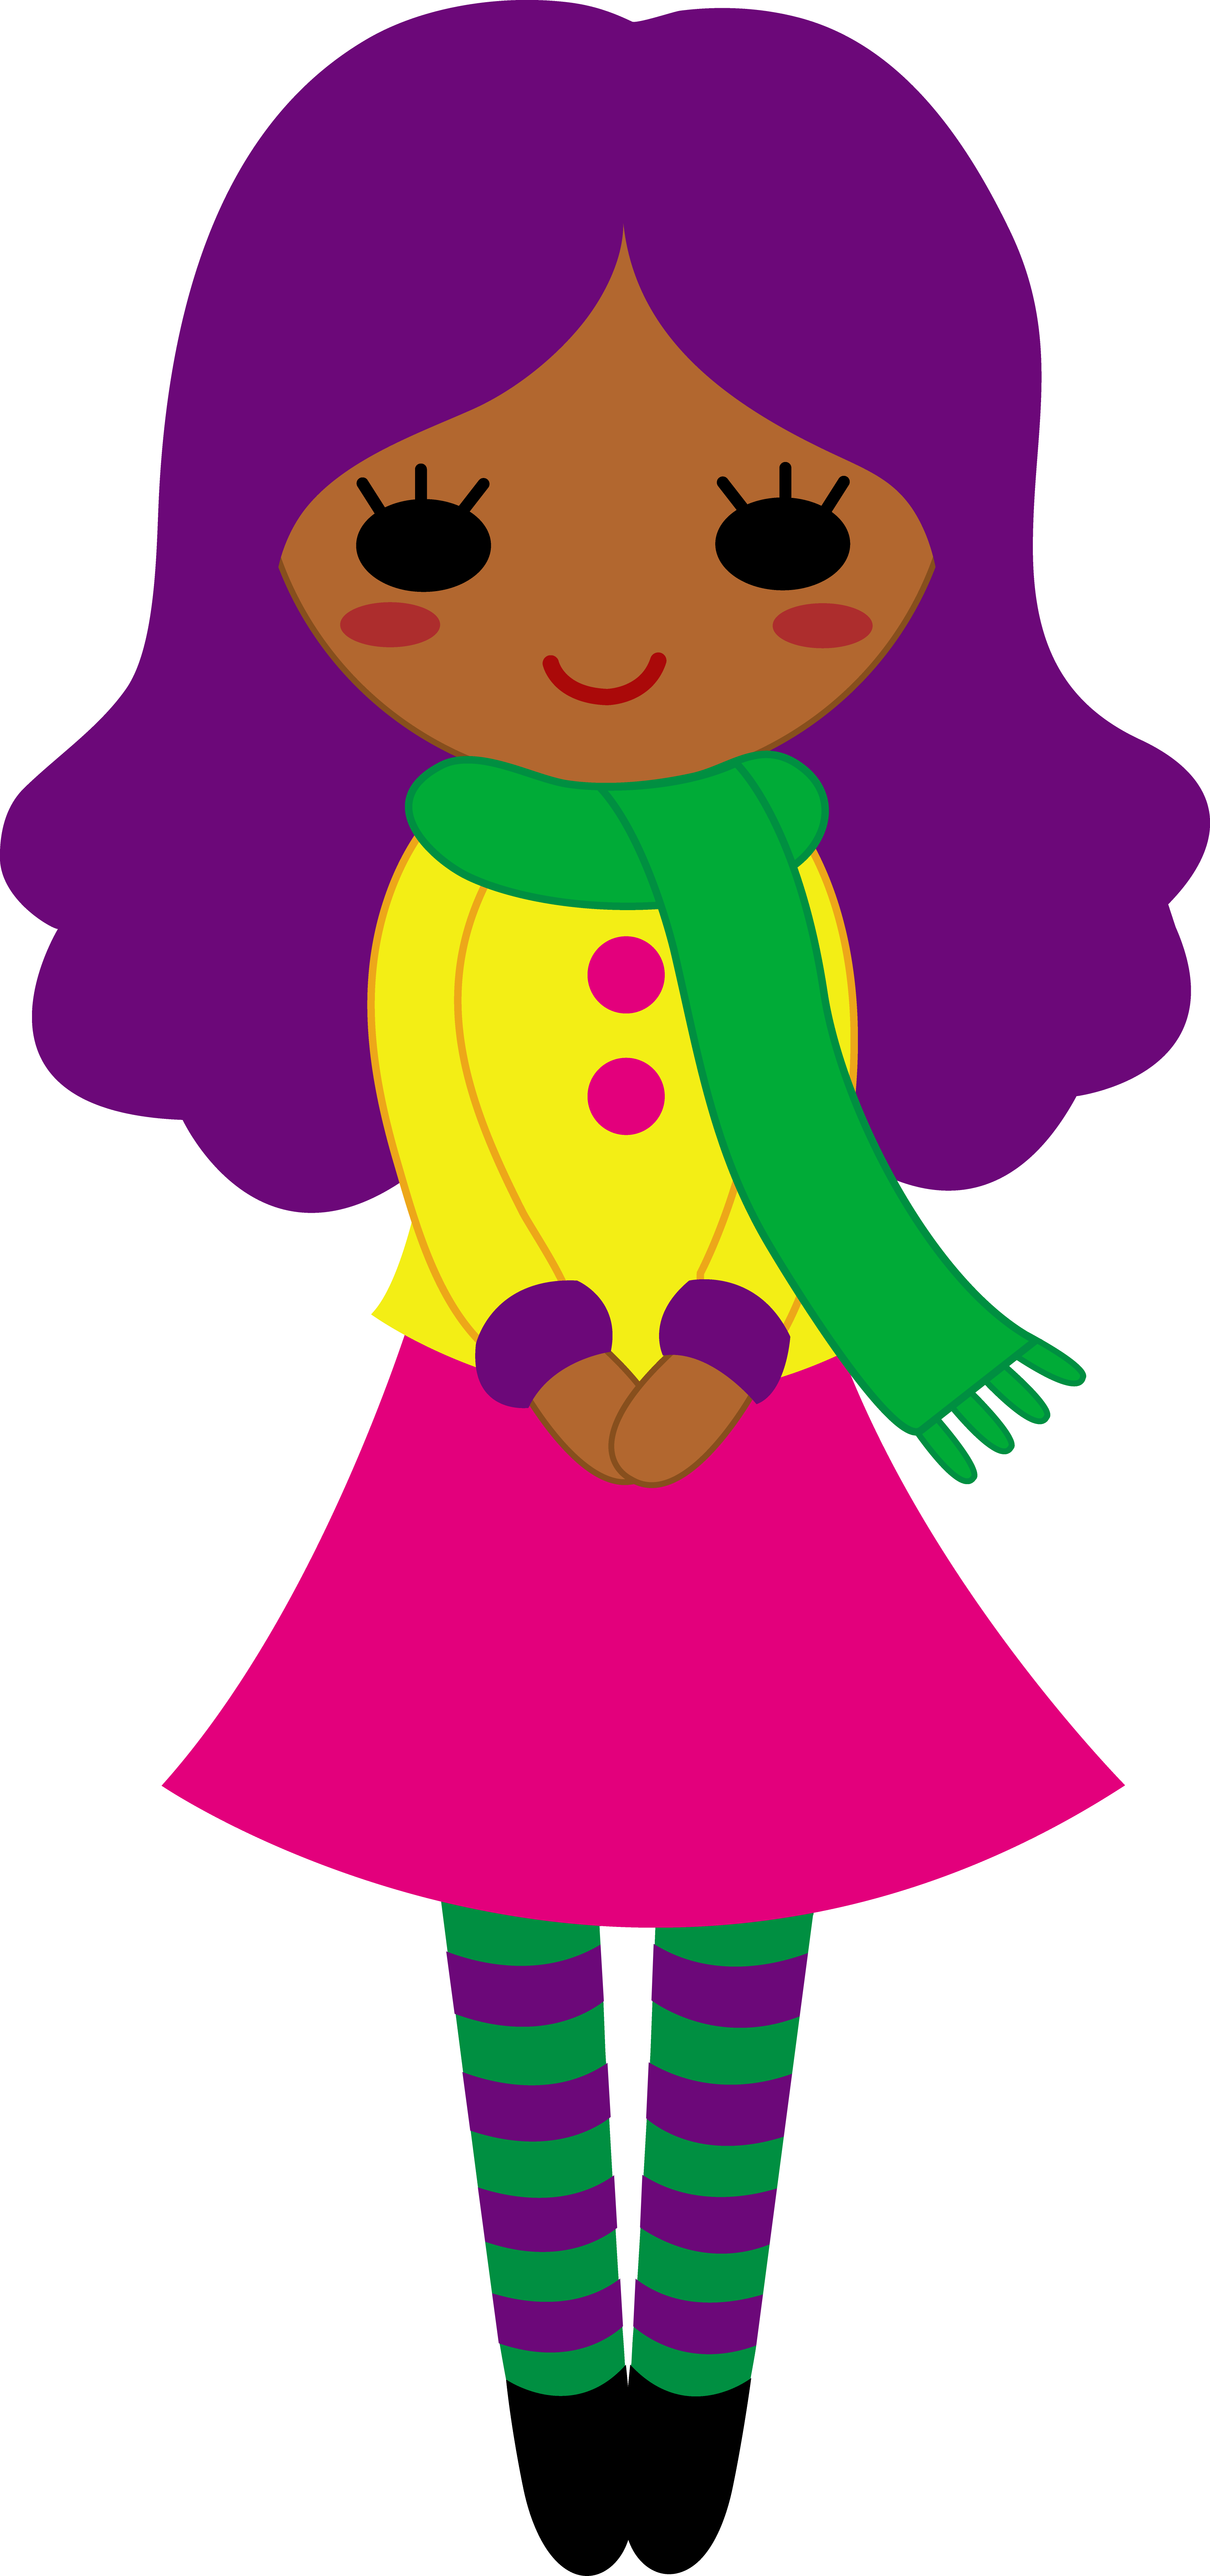 Clipart girl with purple hair.